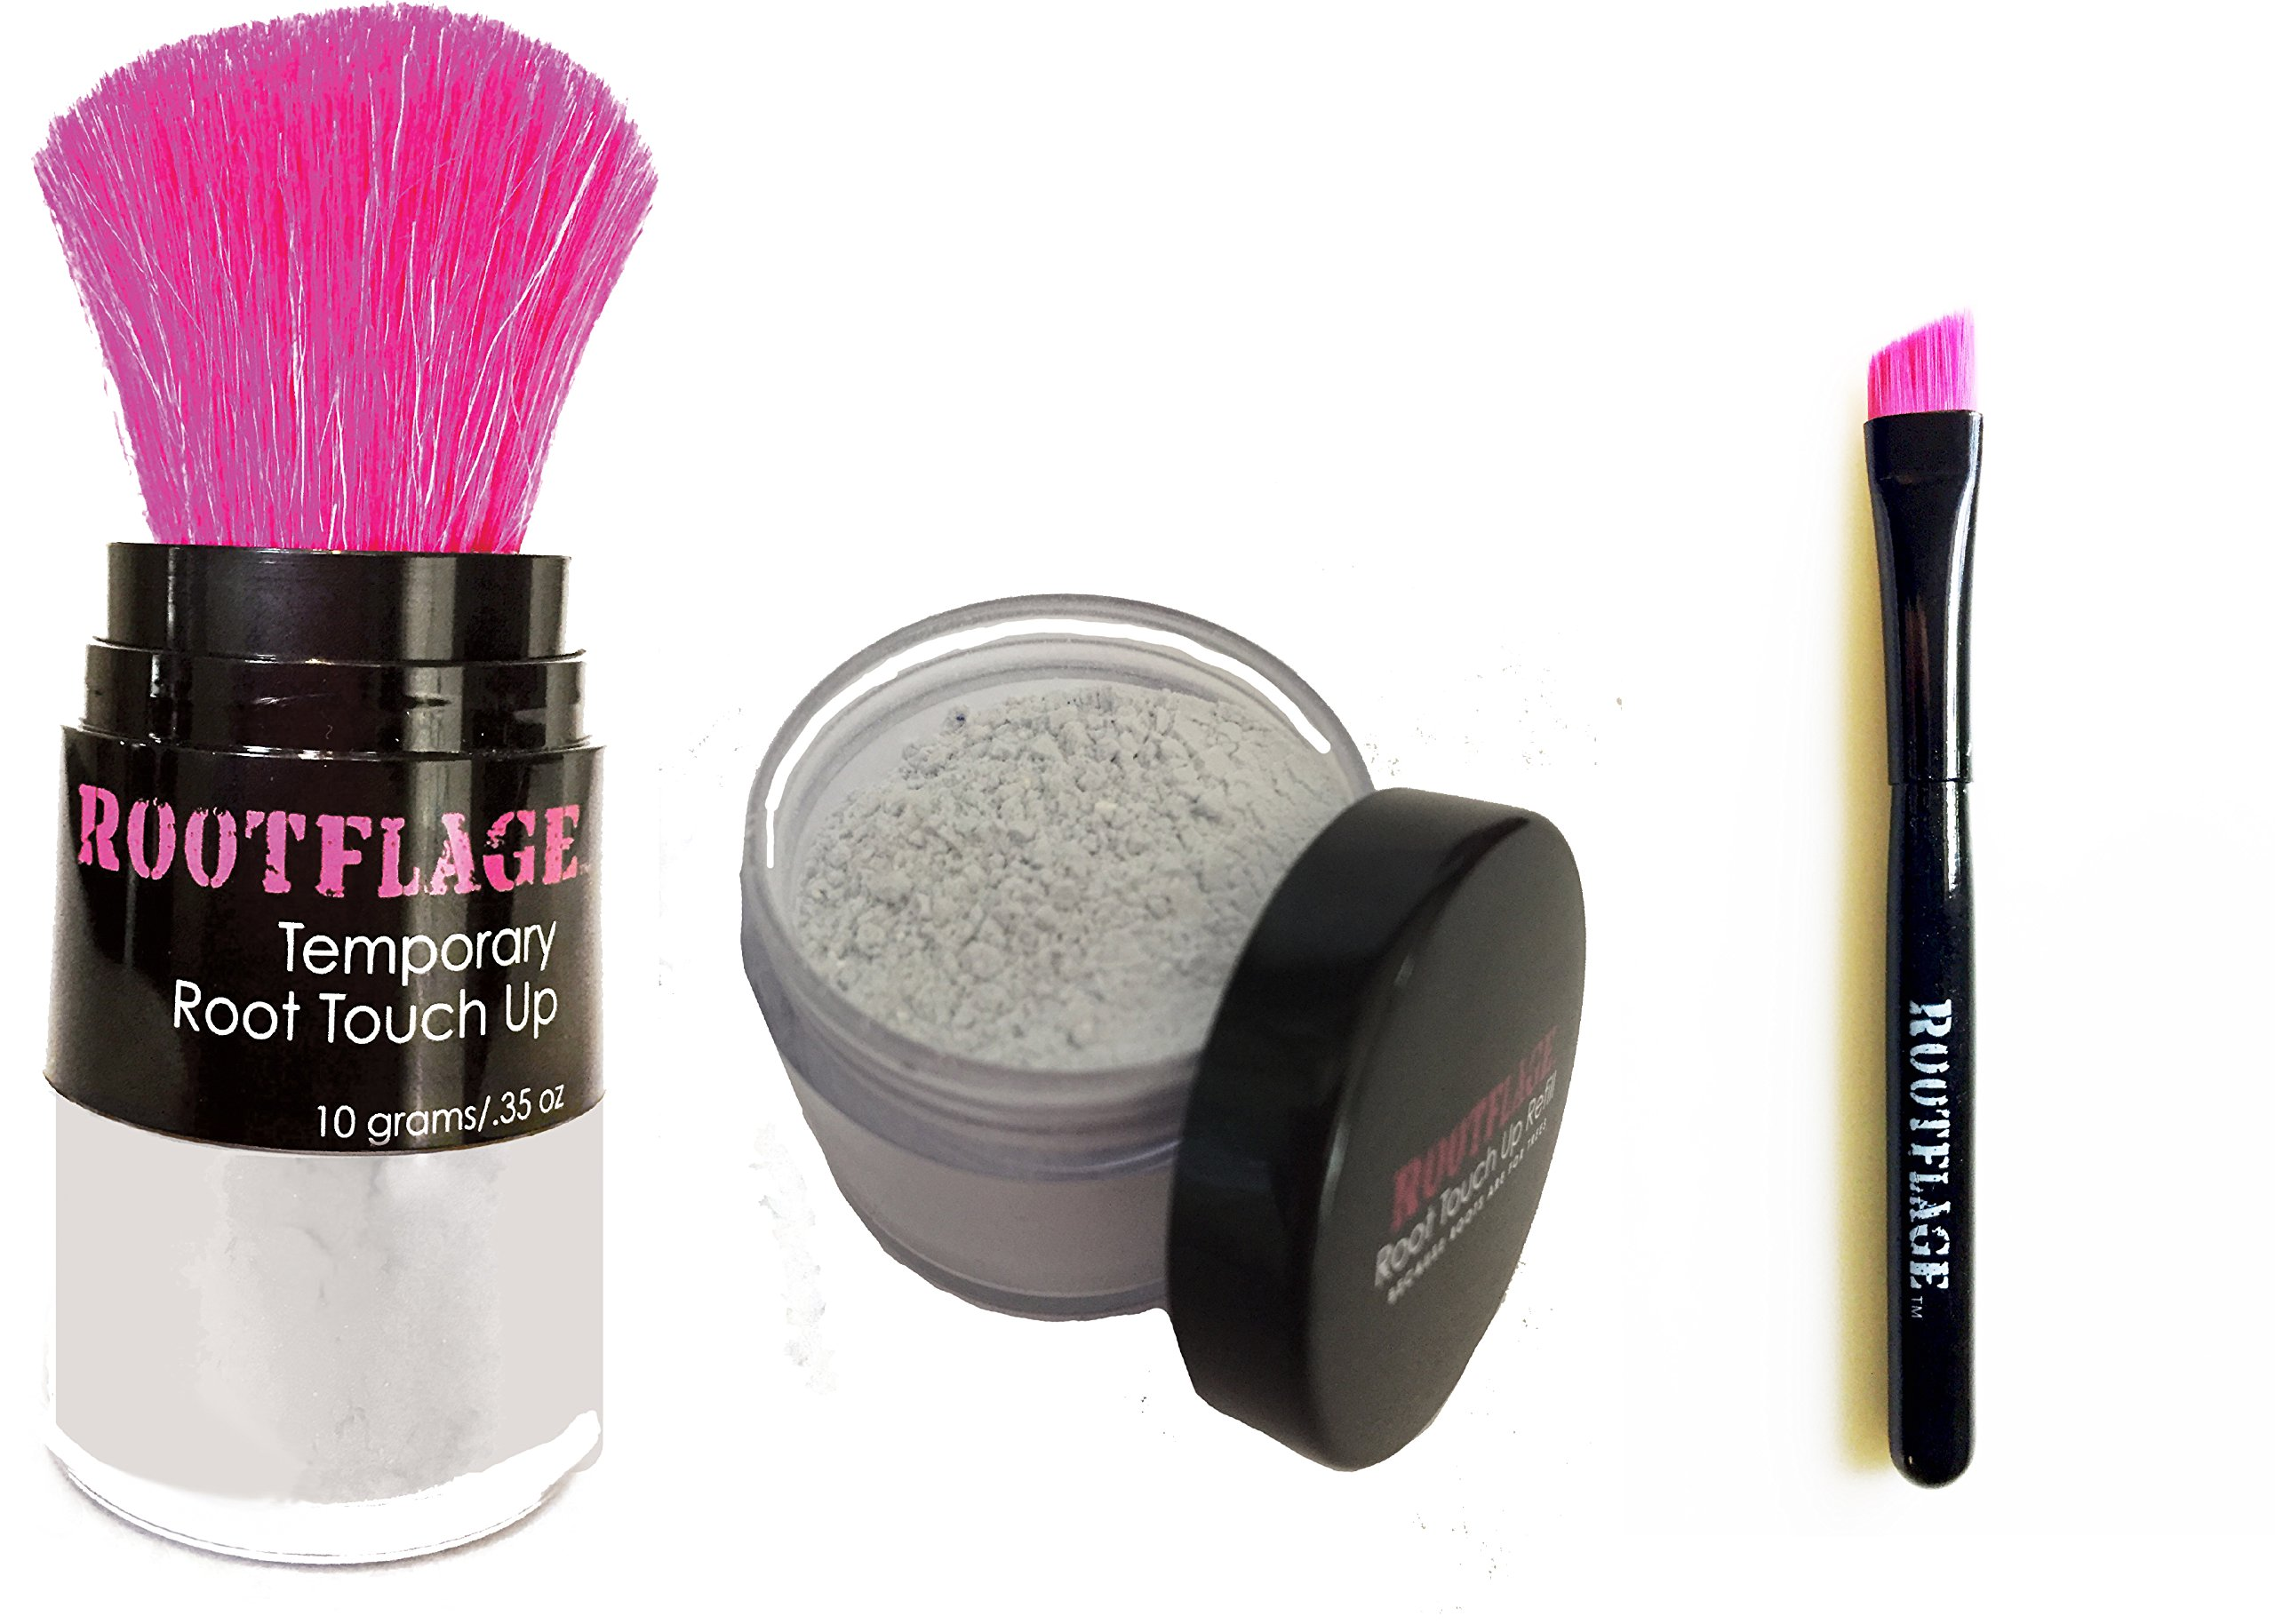 Root Touch Up Hair Powder - Icy Platinum White Temporary Hair Color, Brass Banisher, Root Concealer, Thinning Hair Powder with Kabuki Applicator + Rootflage Refill + Small Detail Brush (ICE HOUSE)